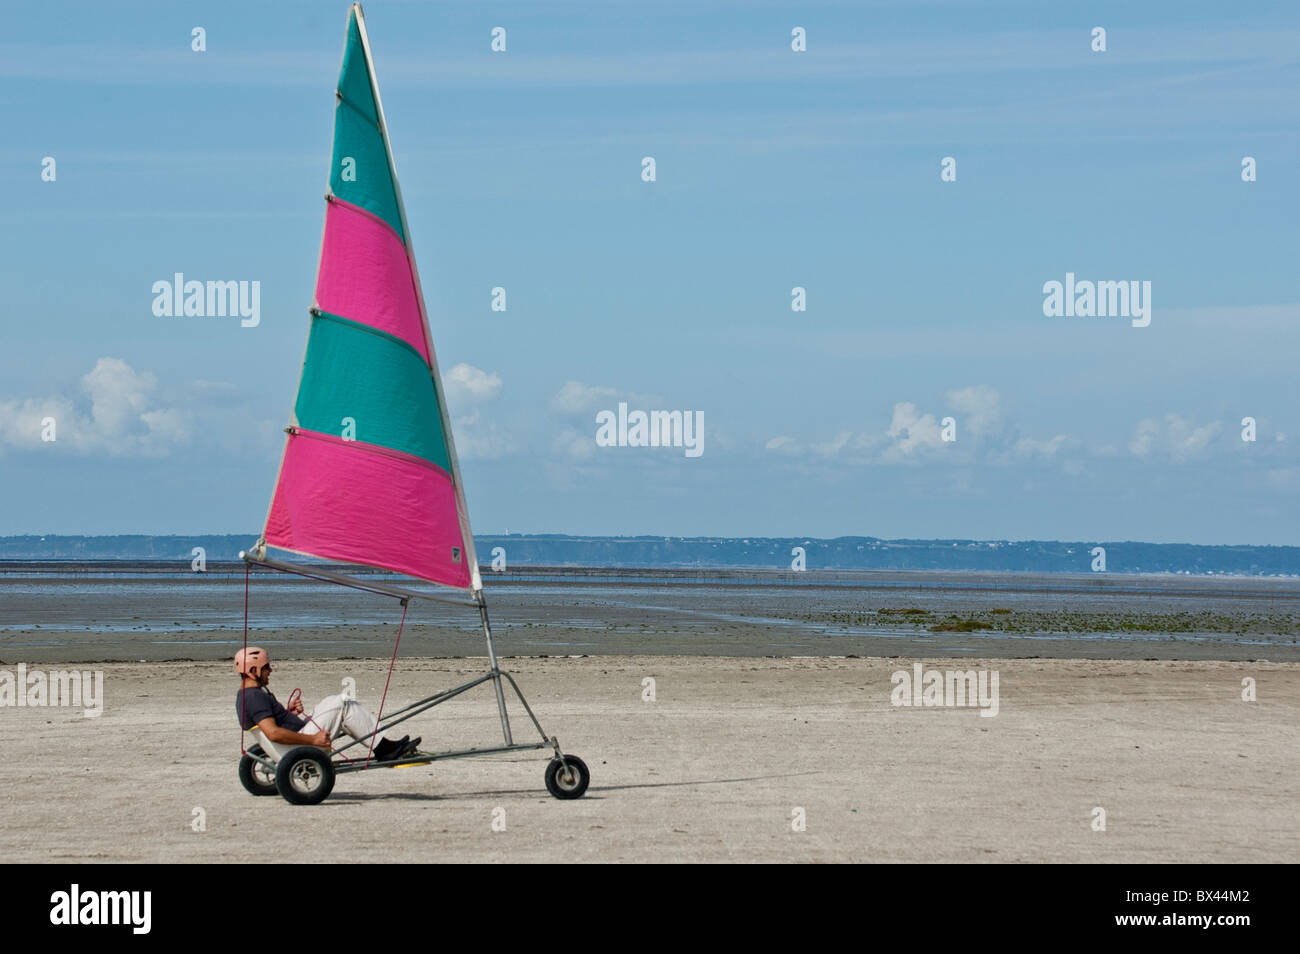 Man land yachting / yacht on a beach - Stock Image